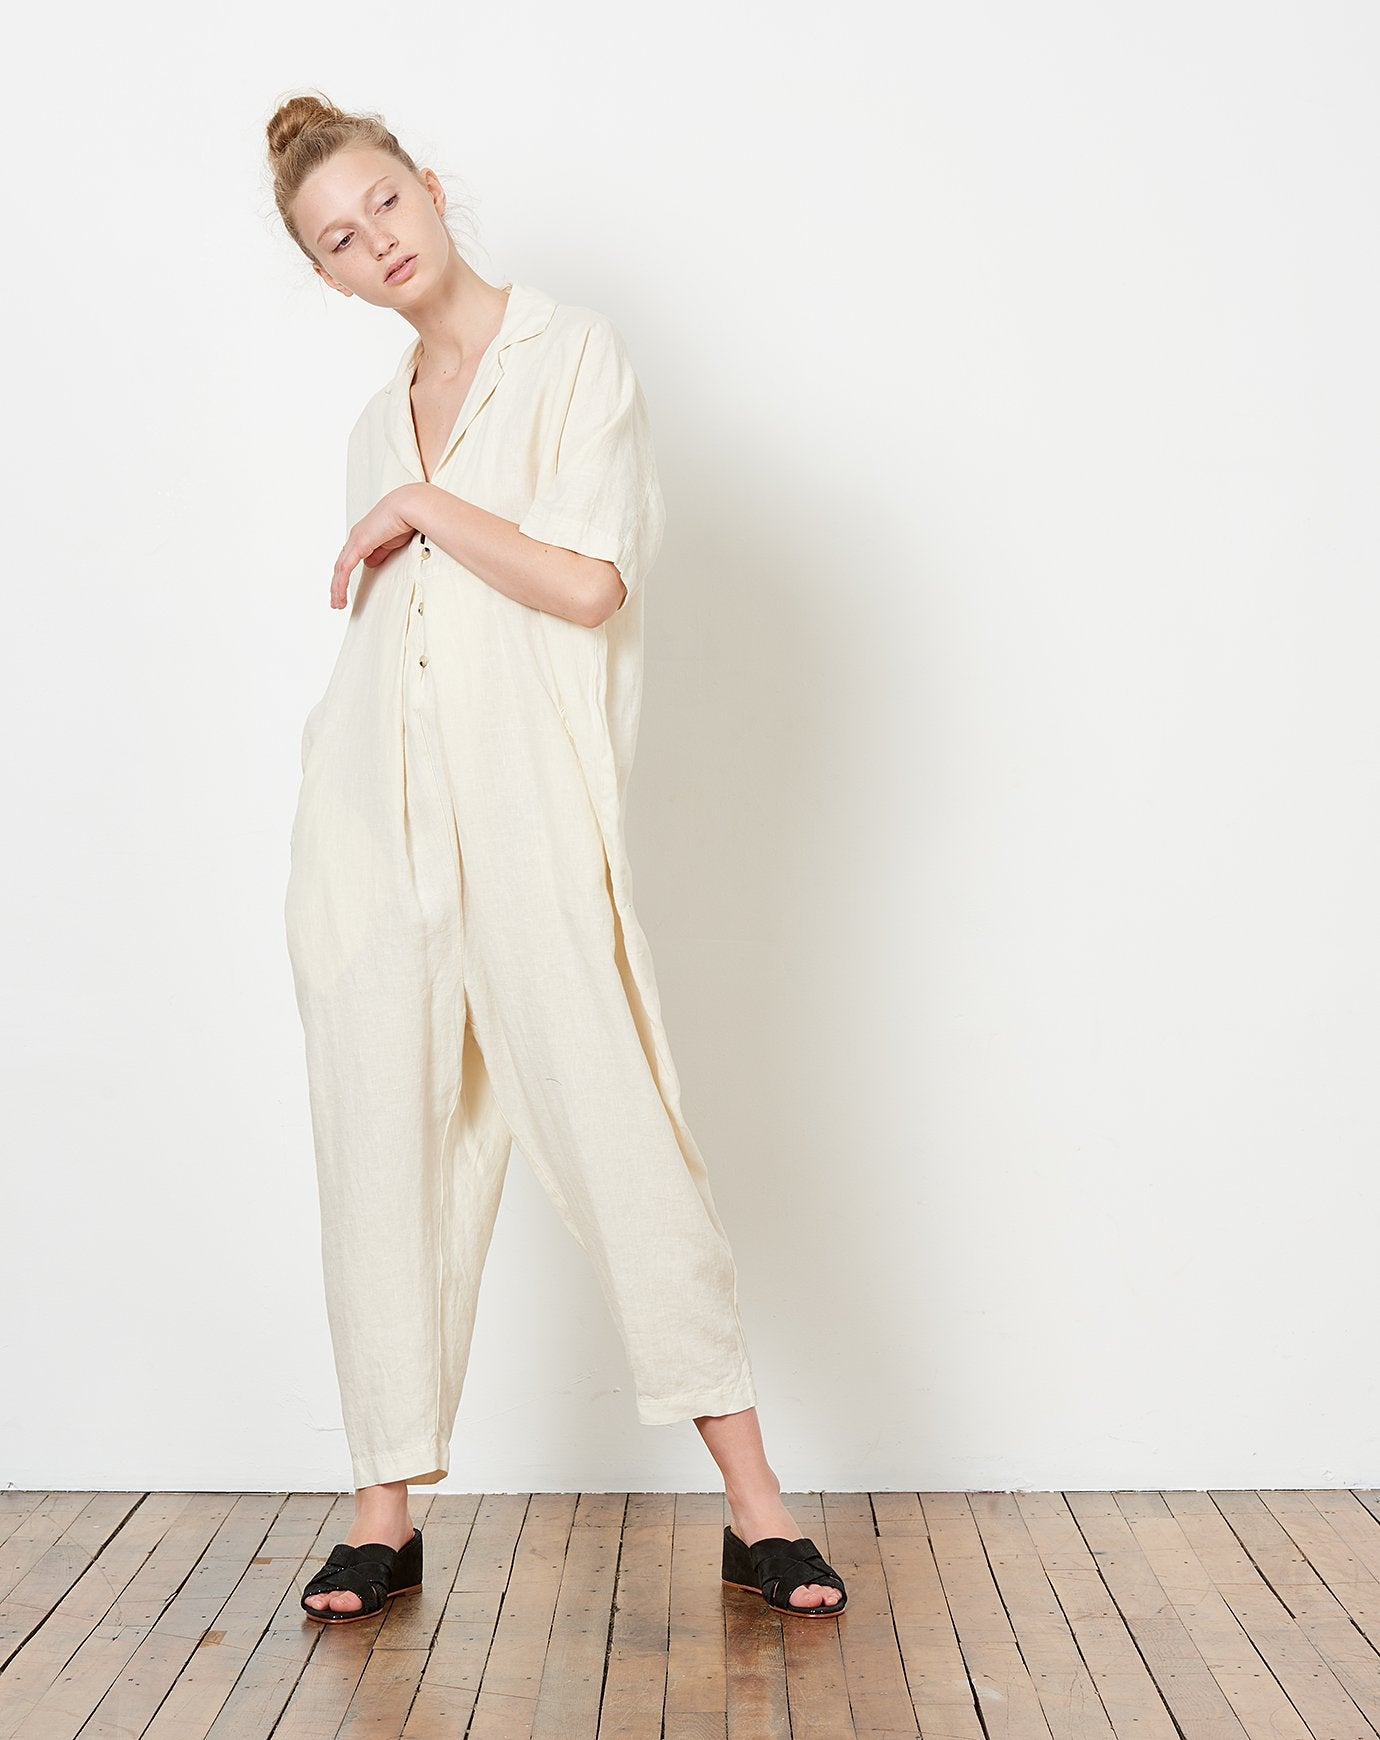 c47529ed9f9 Black Crane Kite Jumpsuit in Cream Black Crane Kite Jumpsuit in Cream ...